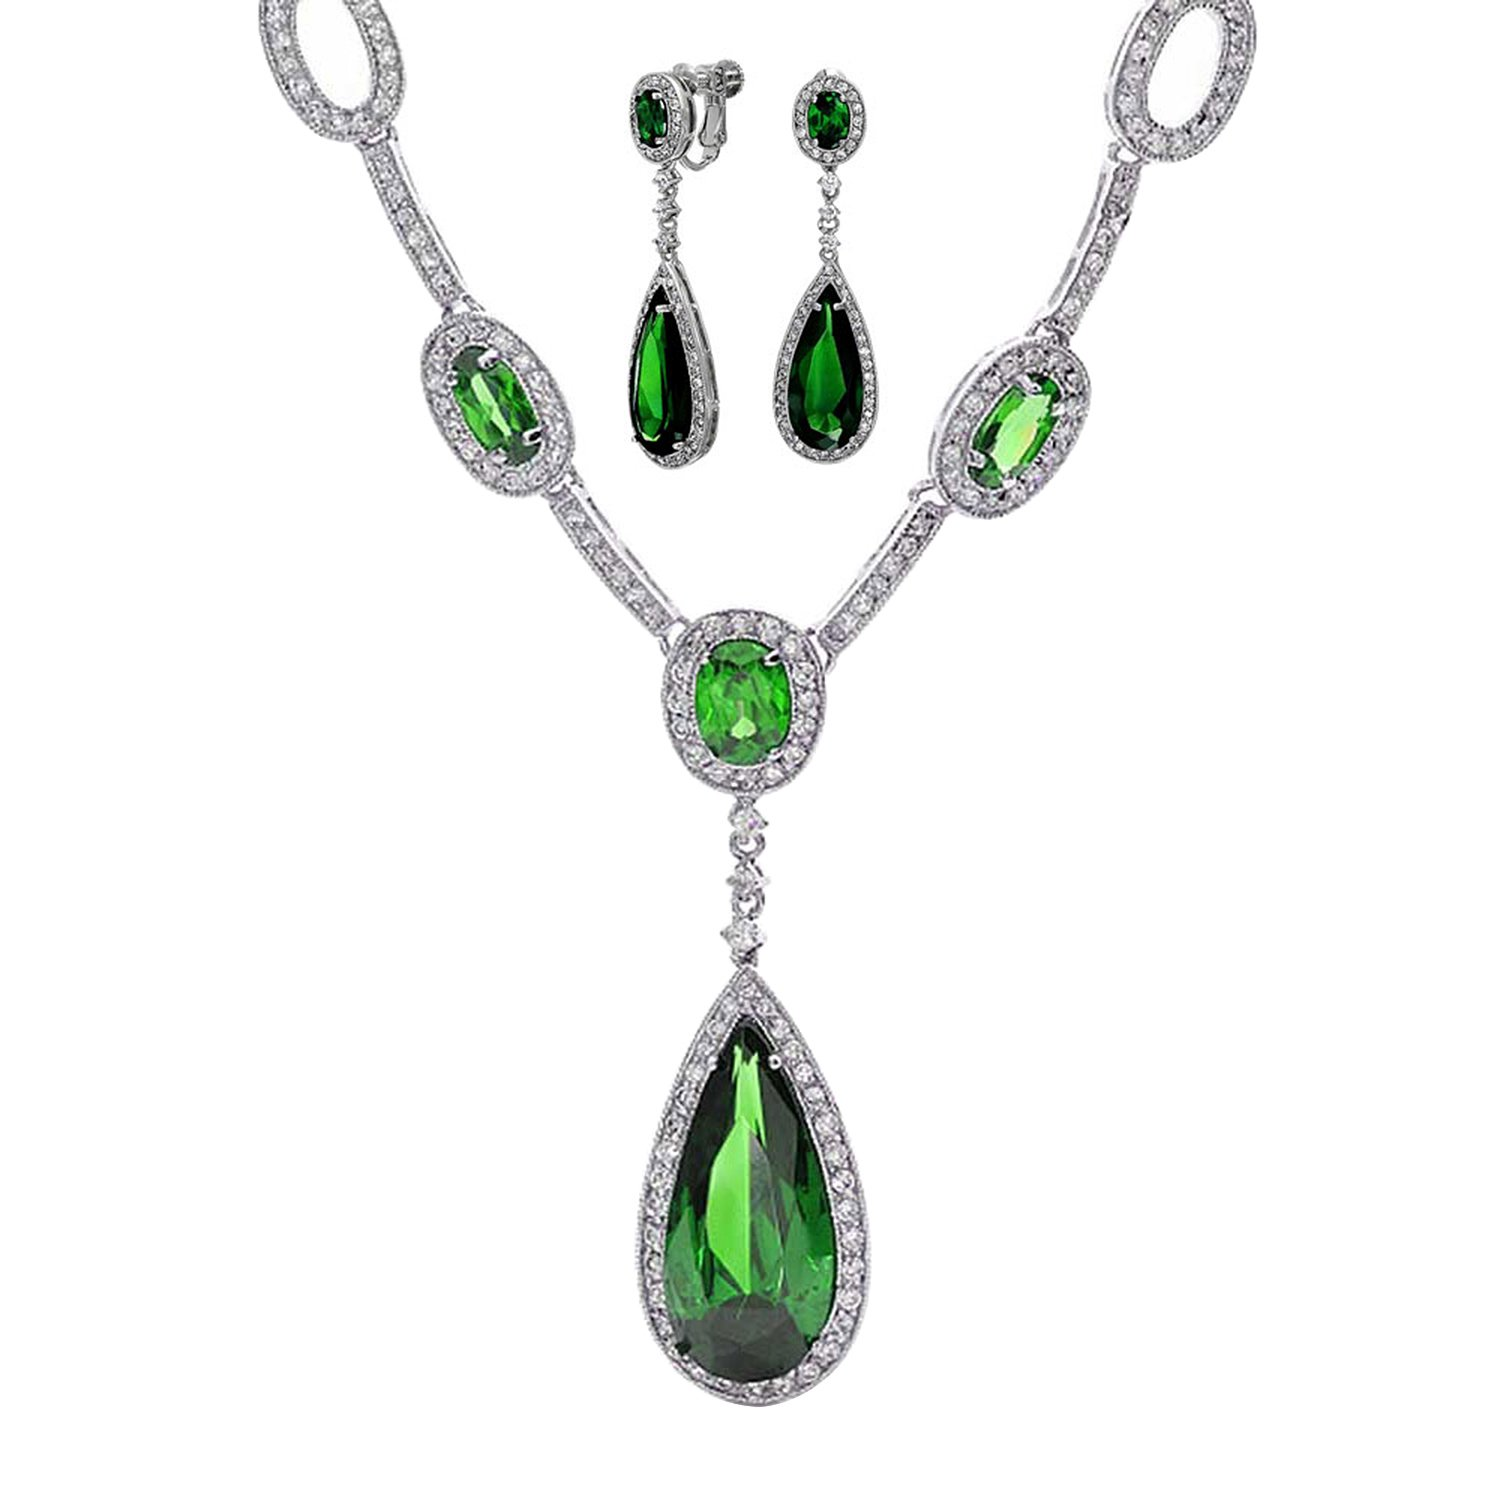 Bling Jewelry Simulated Emerald CZ Necklace Clip Ons Set Rhodium Plated